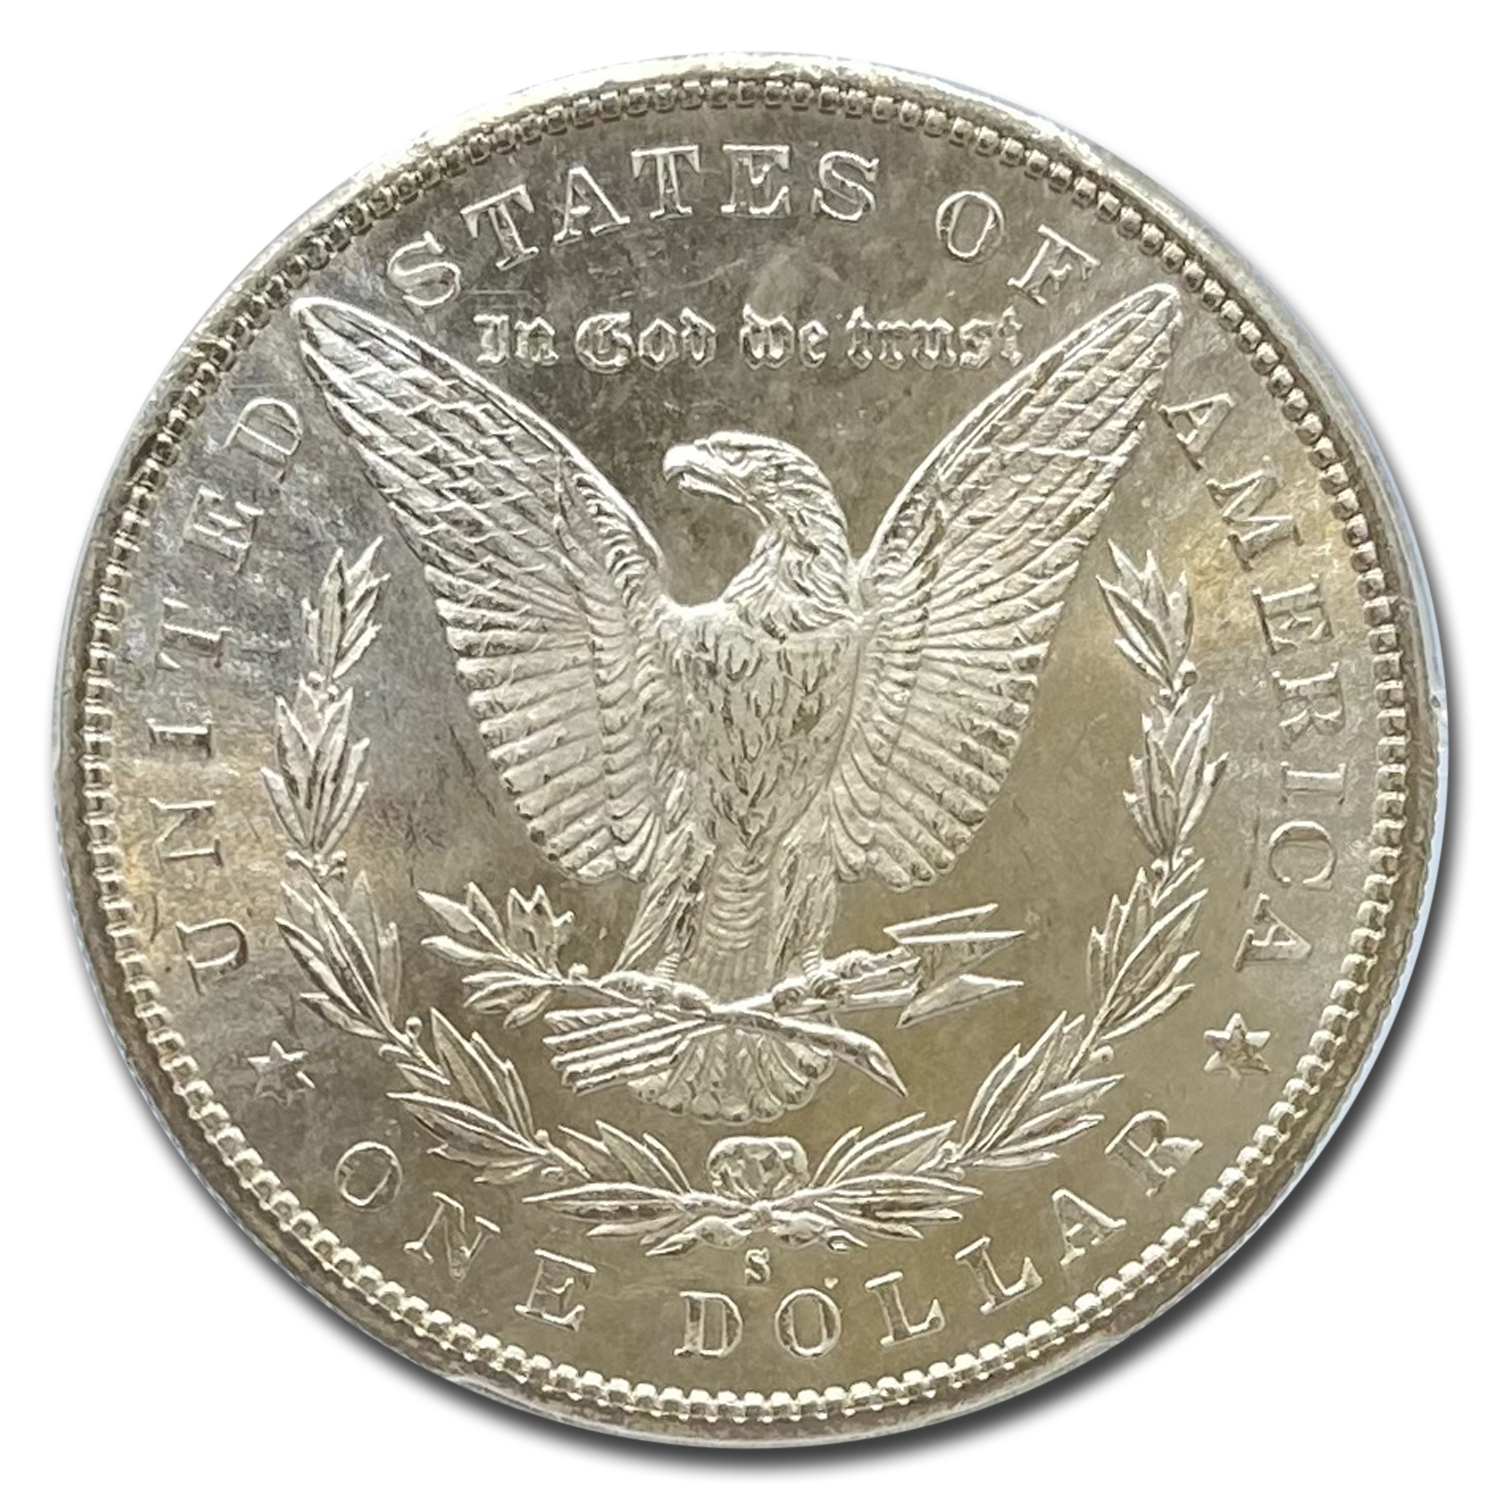 1880-S Morgan Dollar - MS-65 PCGS